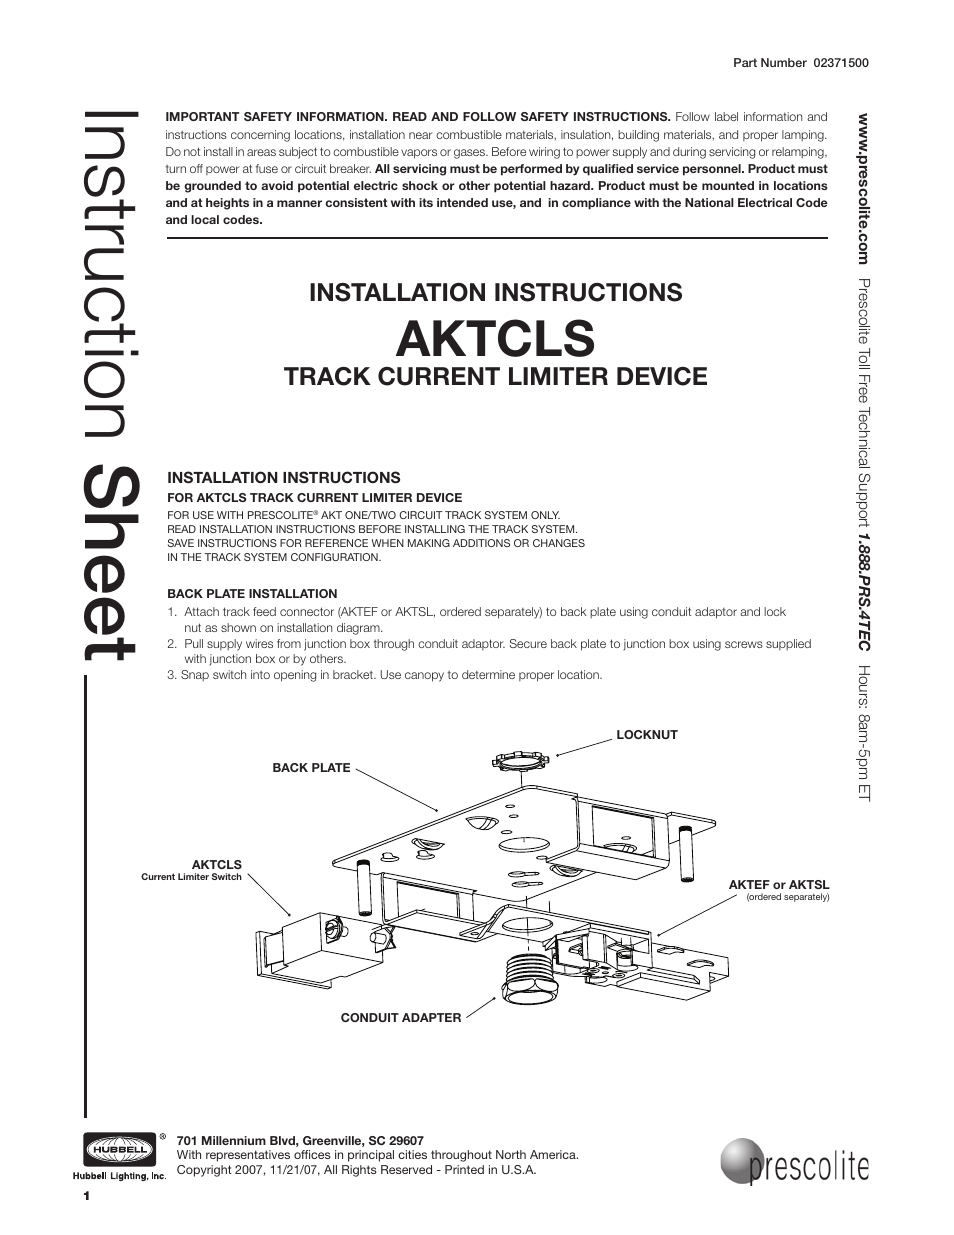 Prescolite Aktcls User Manual 3 Pages Wiring Diagram For Snap Switch